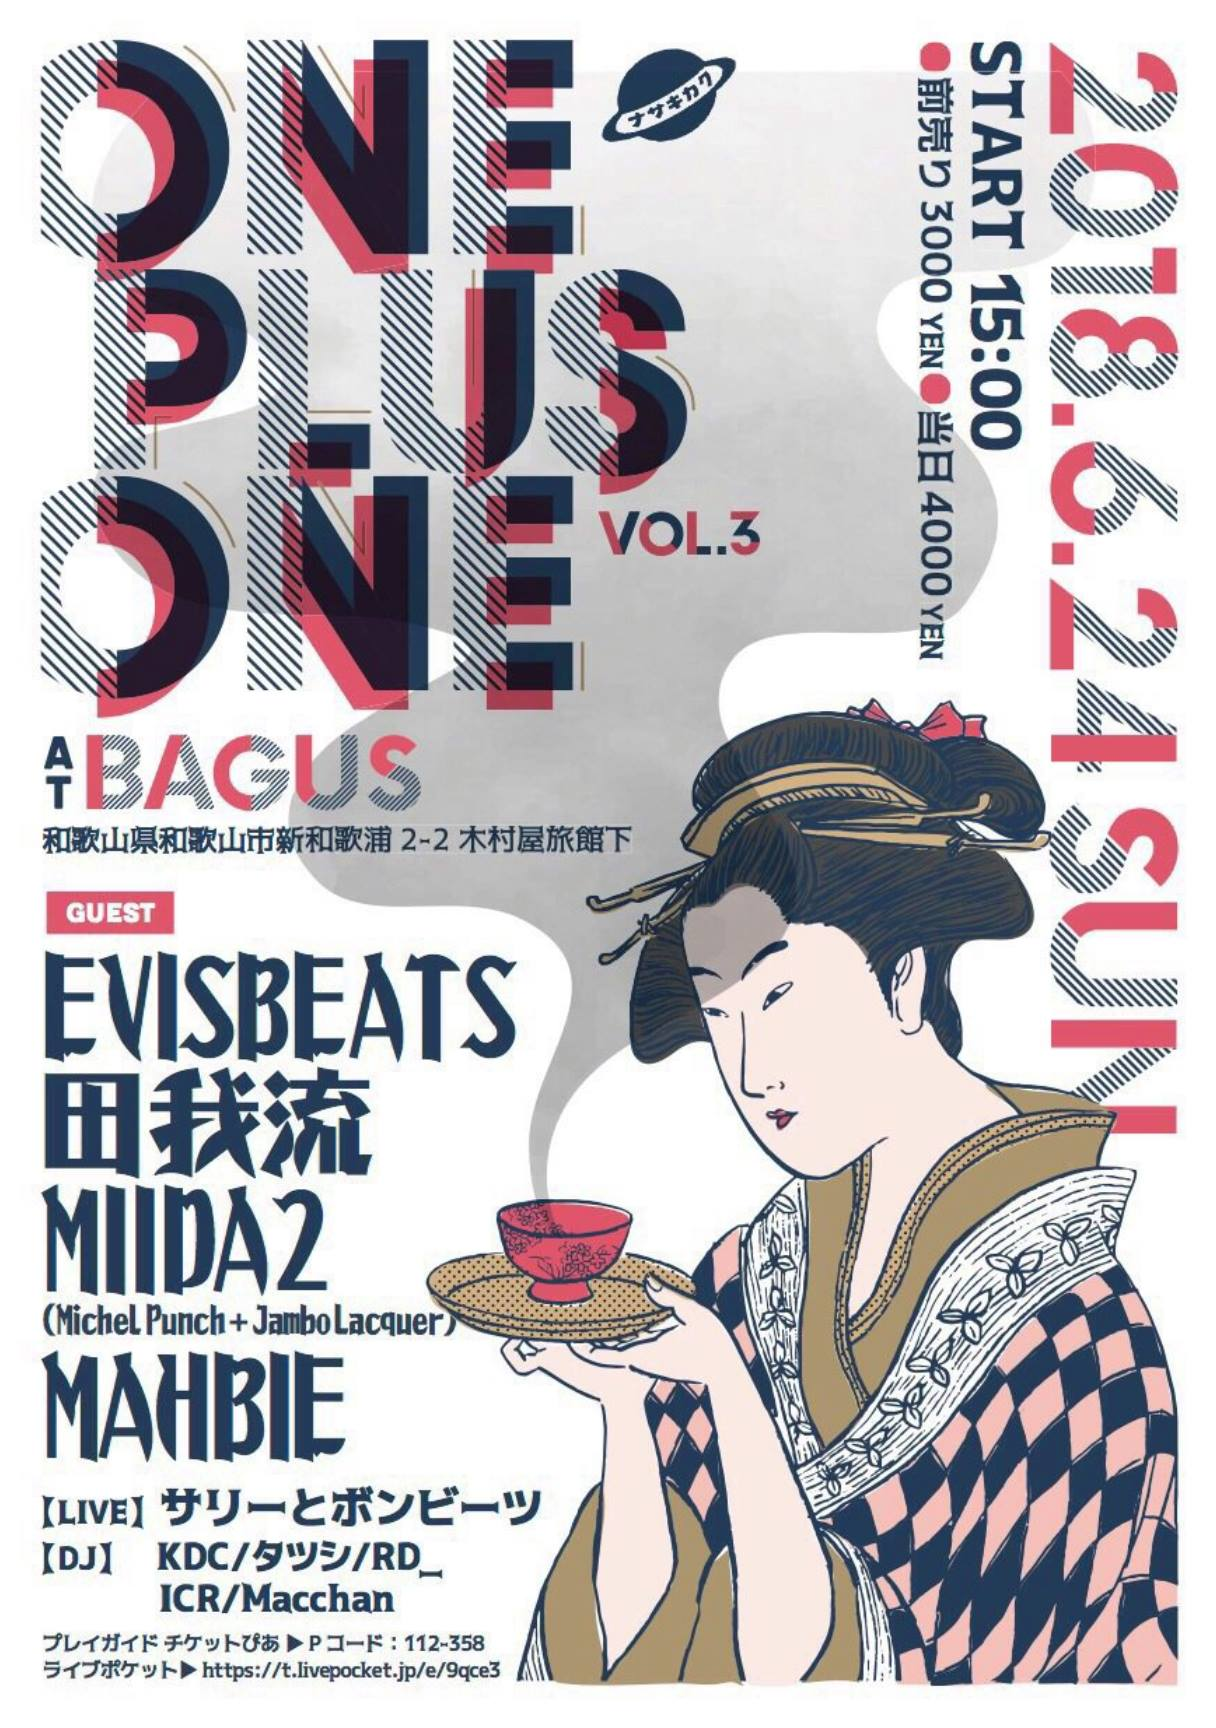 2018/06/24 ONE PLUS ONE vol.3  ゲスト:EVISBEATS,田我流,MIIDA2,MAHBIE